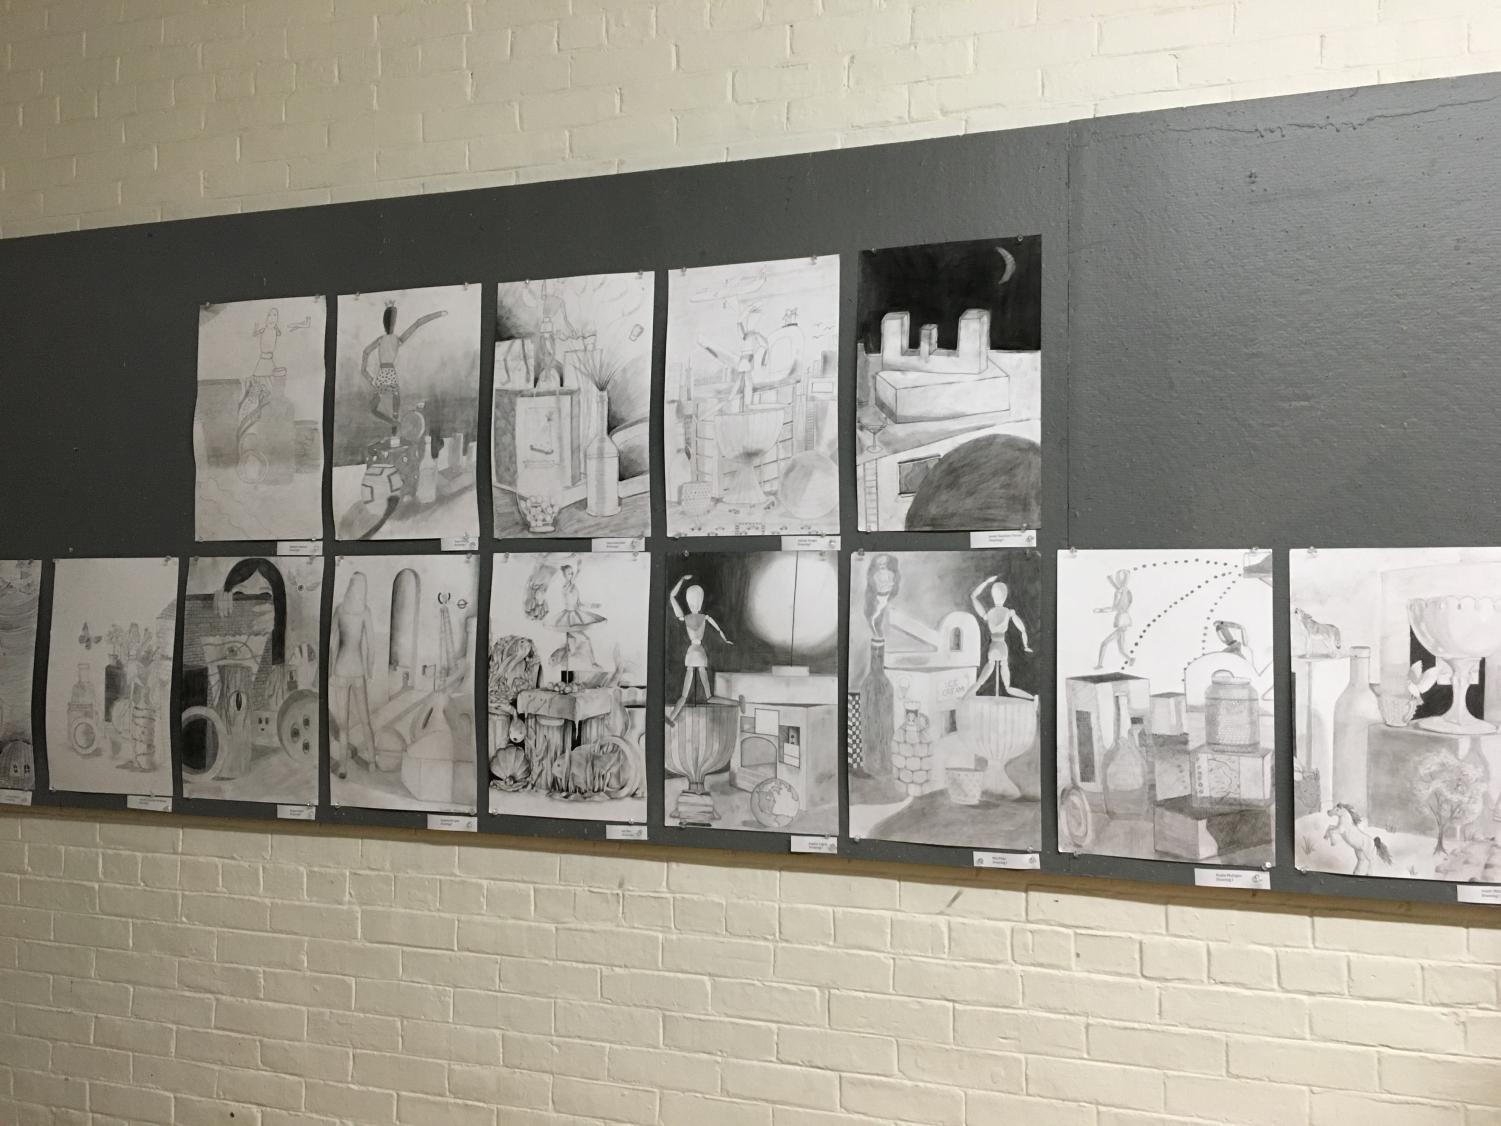 Students reflect on the presence of varied skill levels in art classes. All artists at the high school must start with level one classes before moving on to more advanced electives.